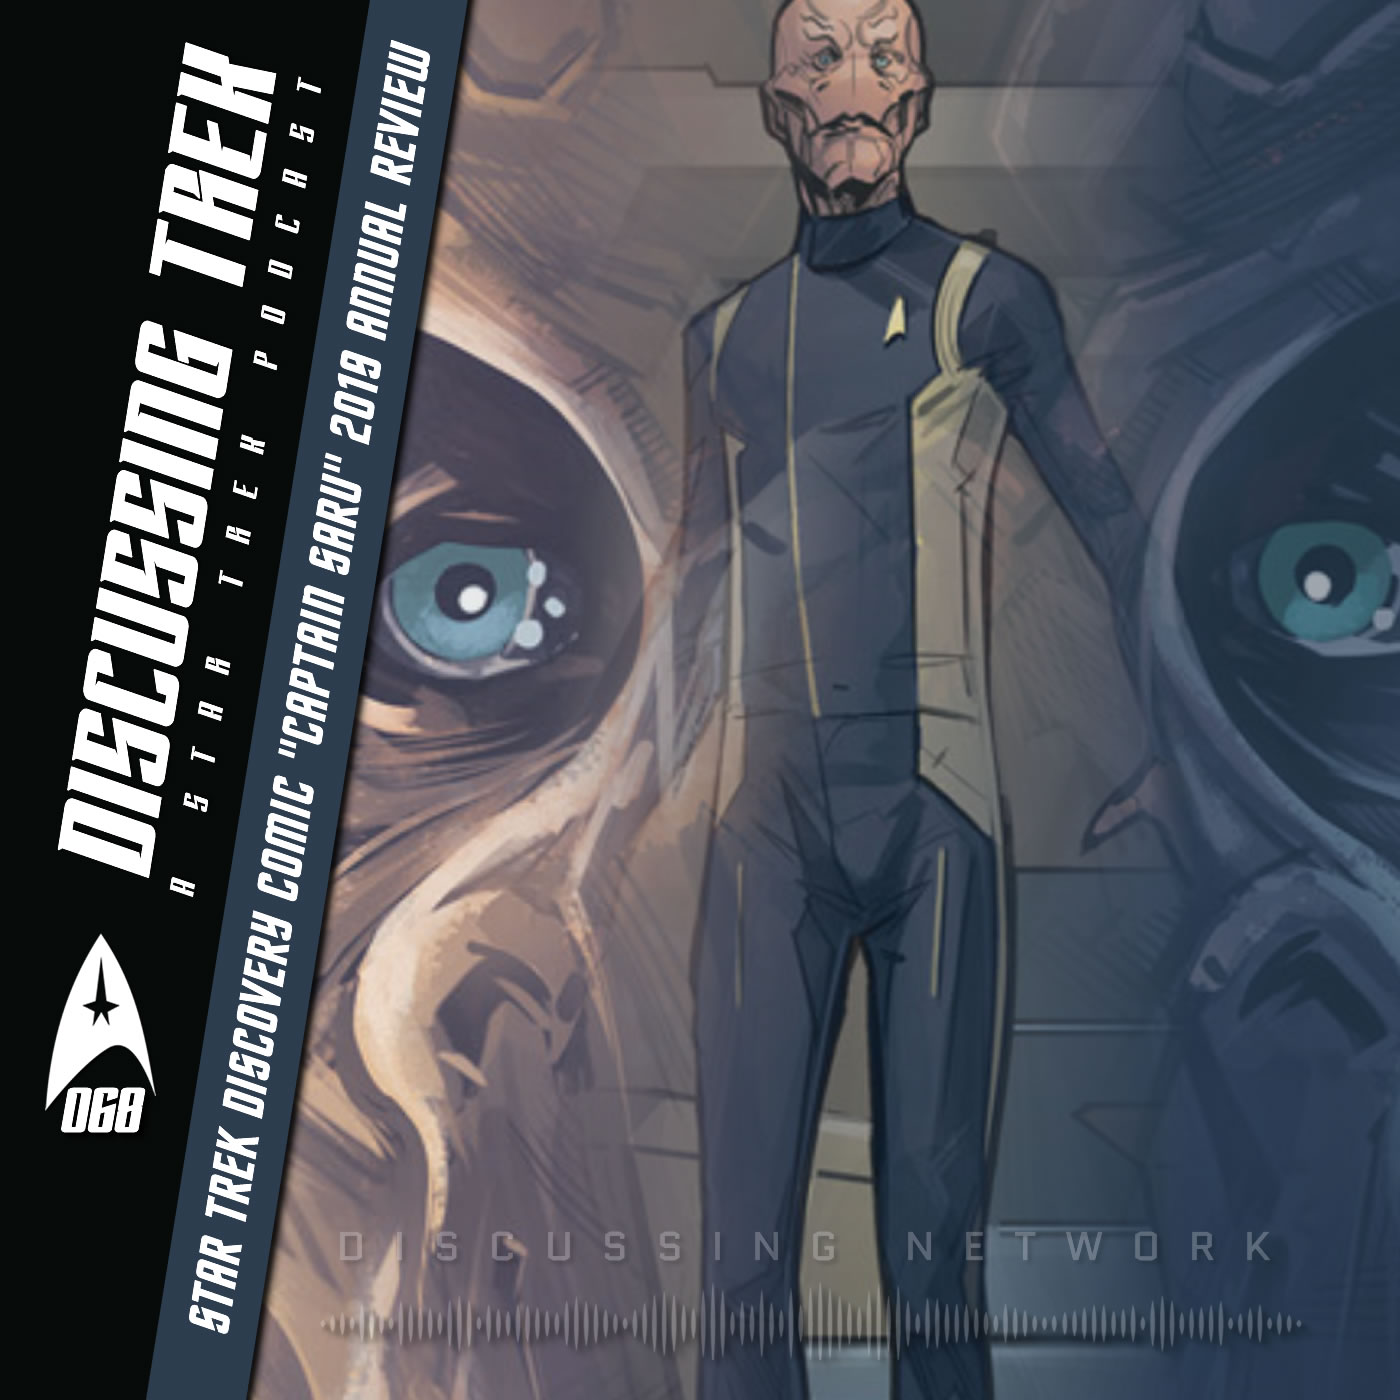 Discussing Trek: A Star Trek Podcast (Discovery, Picard) – A podcast